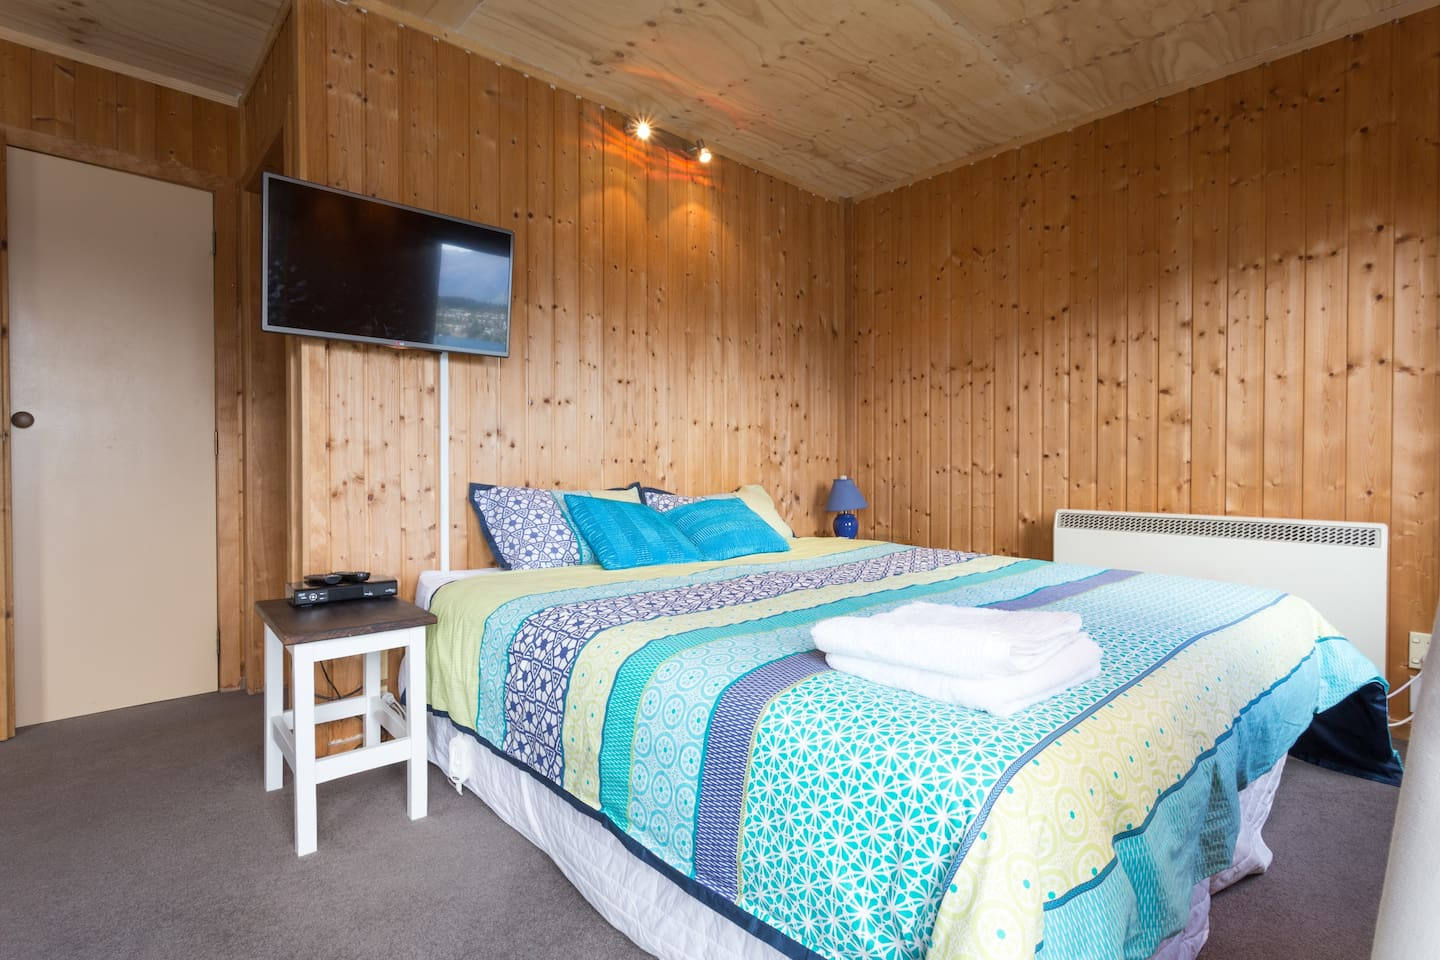 maxwell lodge best view ensuite bed amp breakfasts for rent in queenstown: heater table aaad